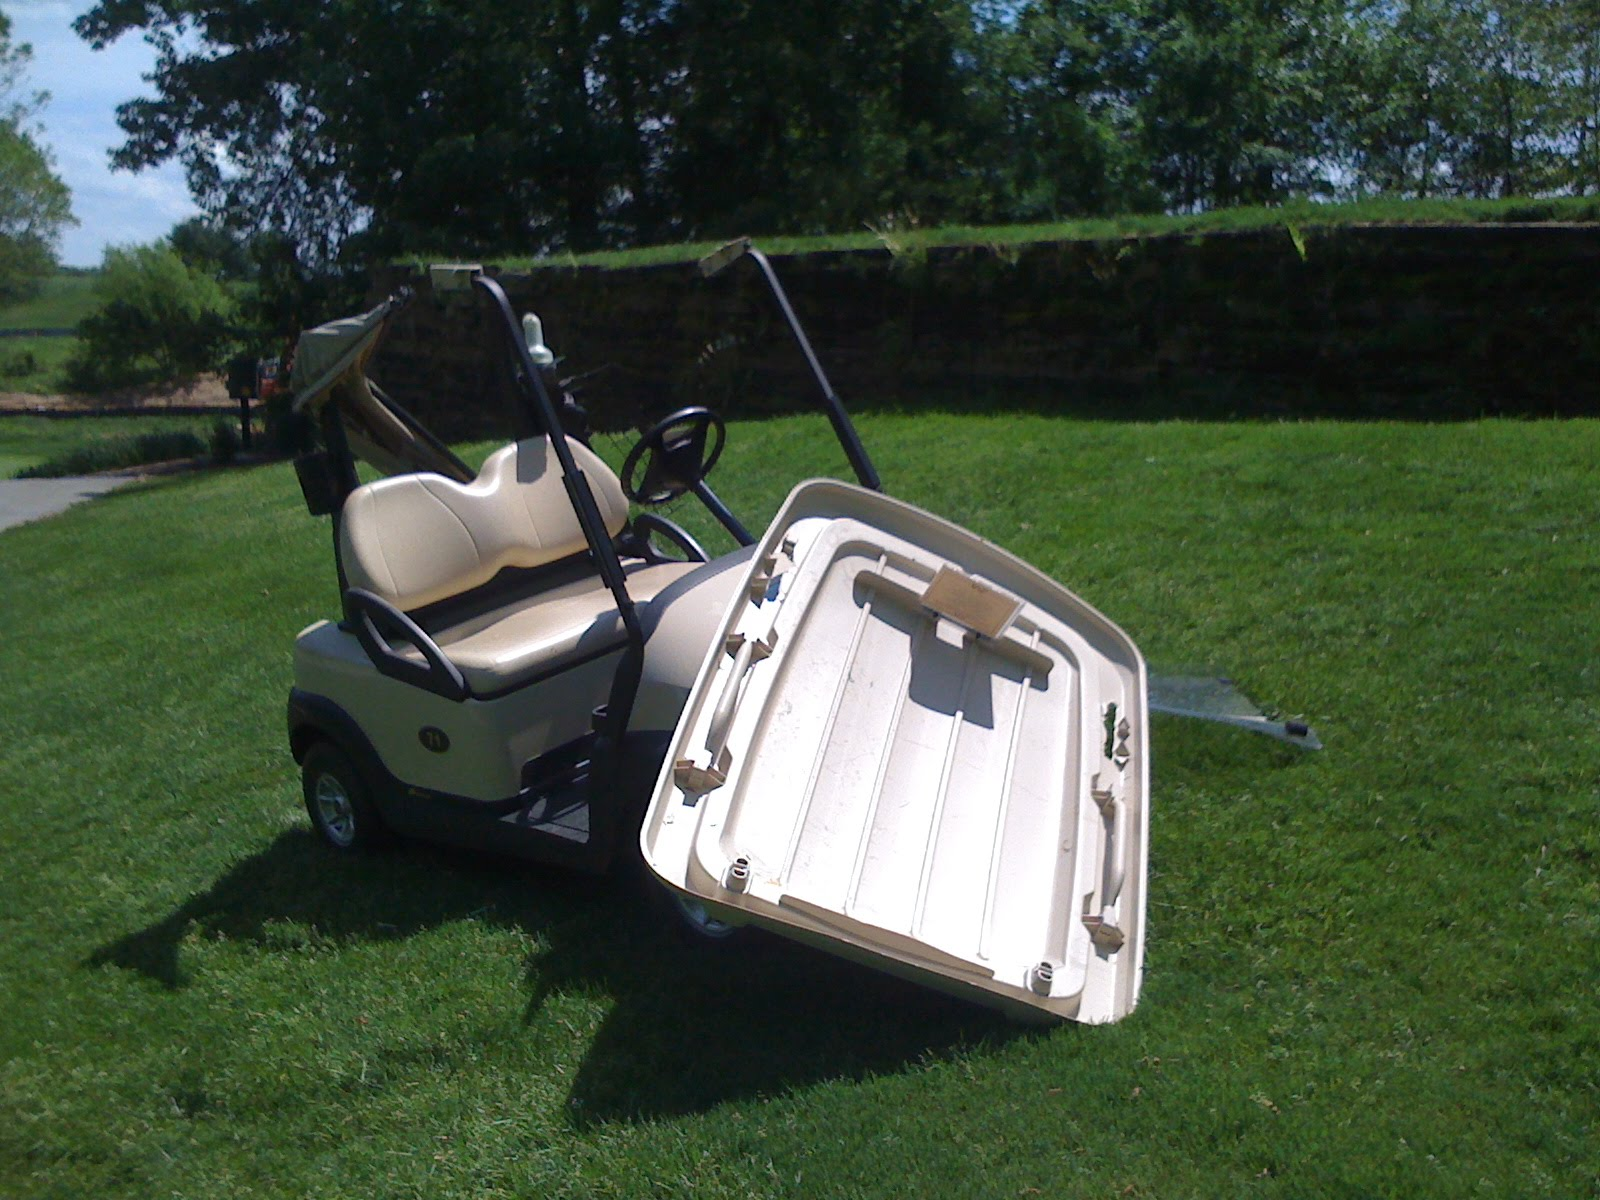 golf cart accidents emg 81 pickup wiring diagram tales of two cities a bad drive